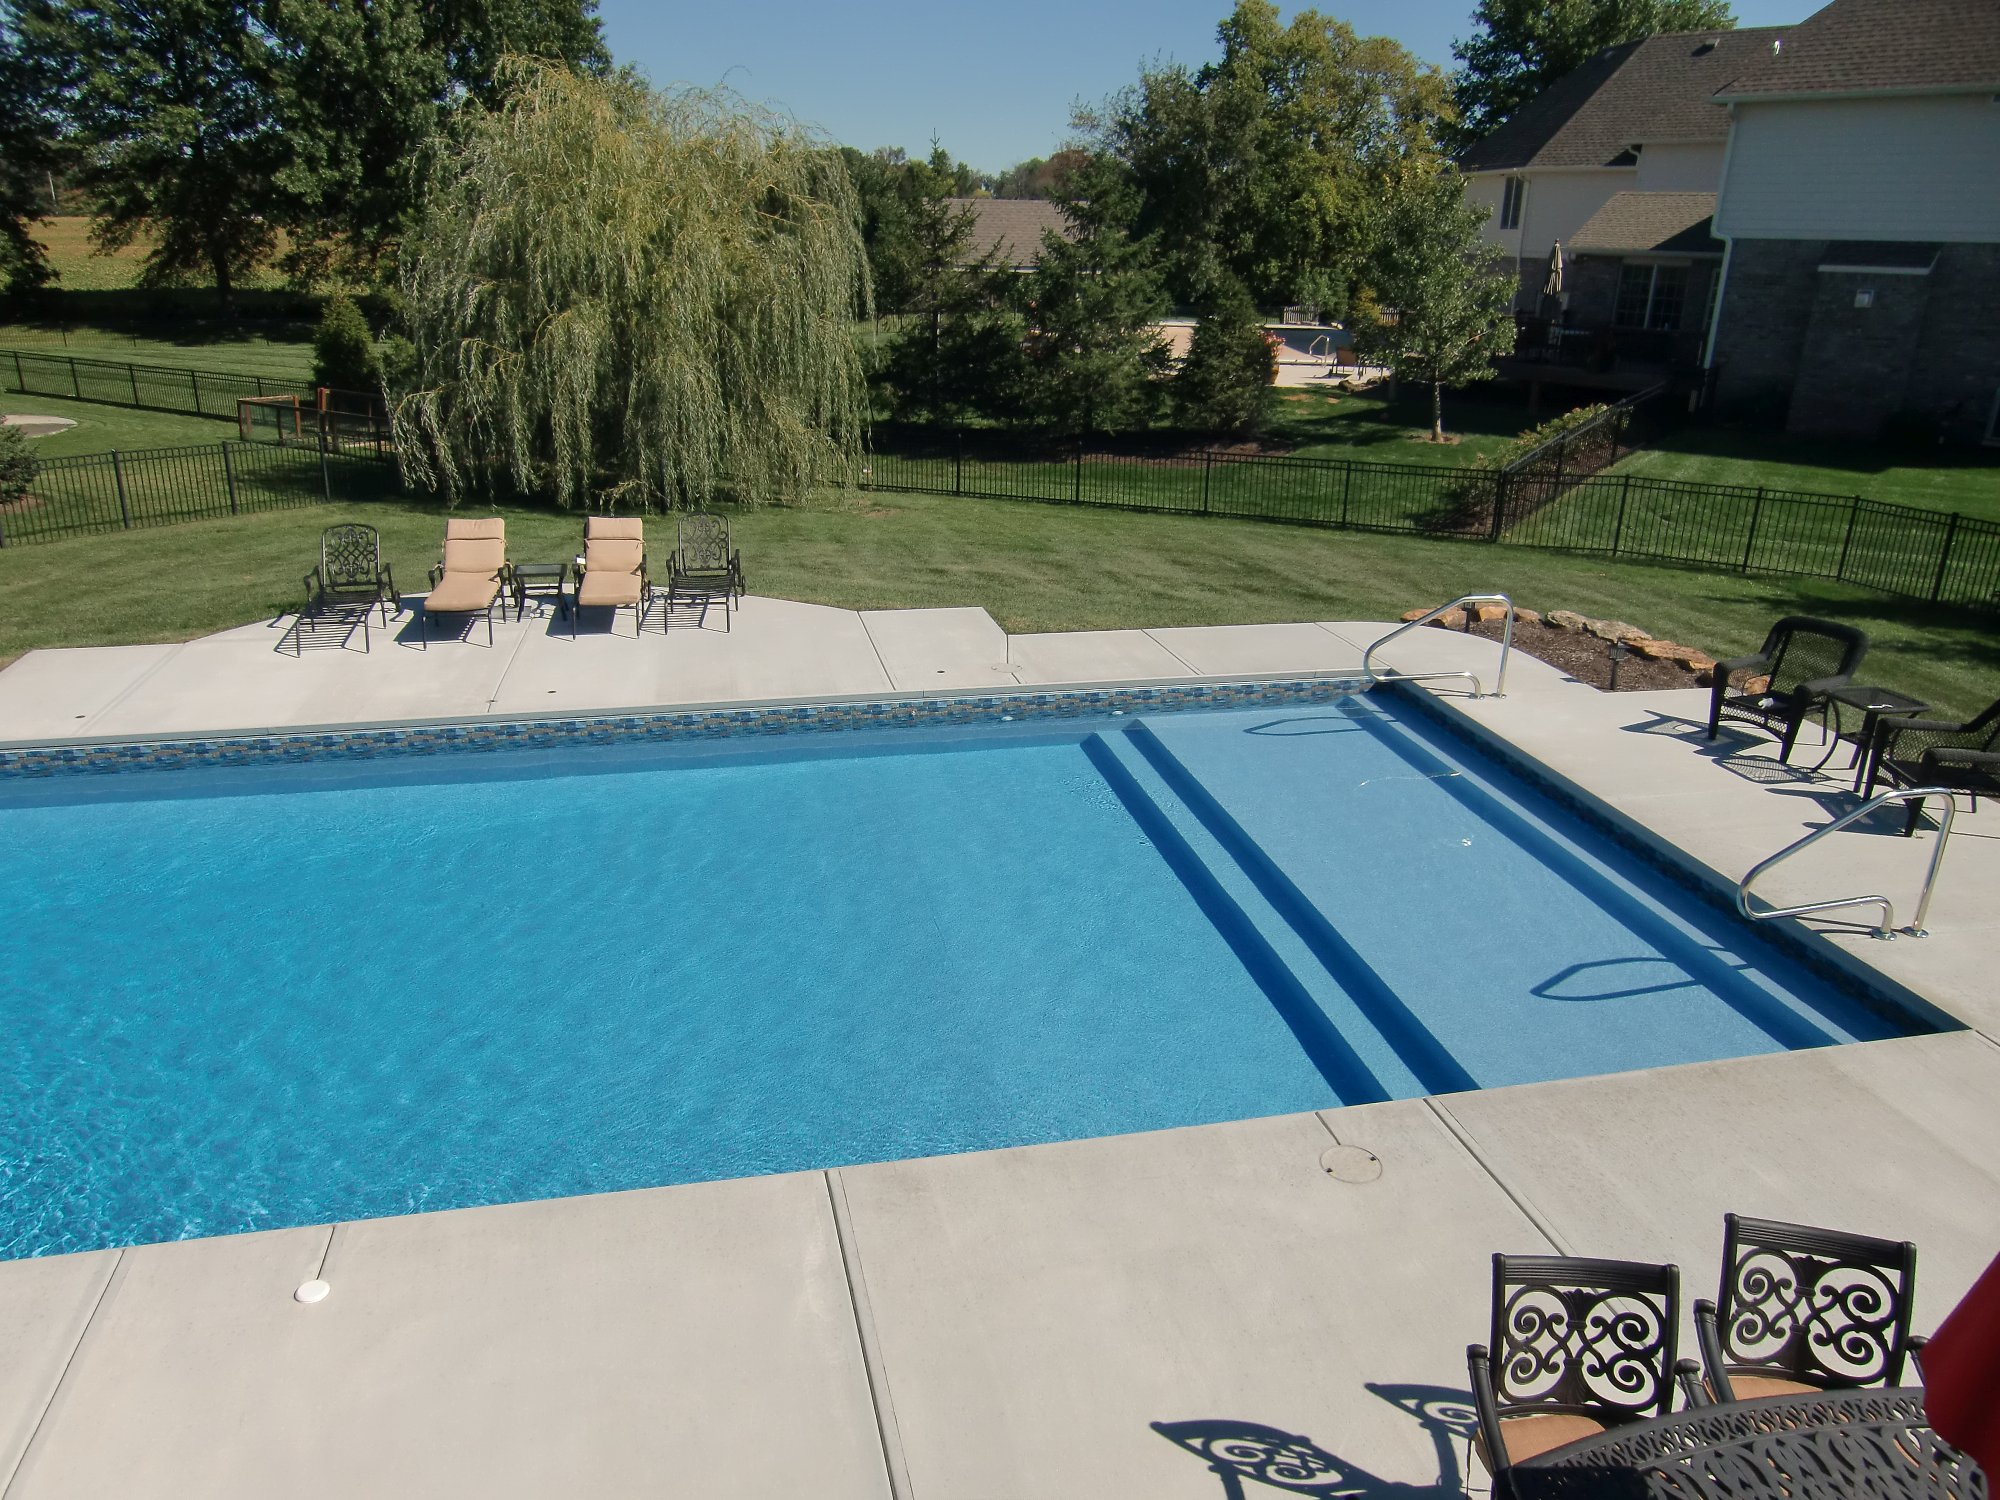 Pool Liner Designs For Inground Pools swiming pools beach pebble on blue with liners that we have replaced also natural blue pool Sunshelf Vinyl Liner Indianapolis